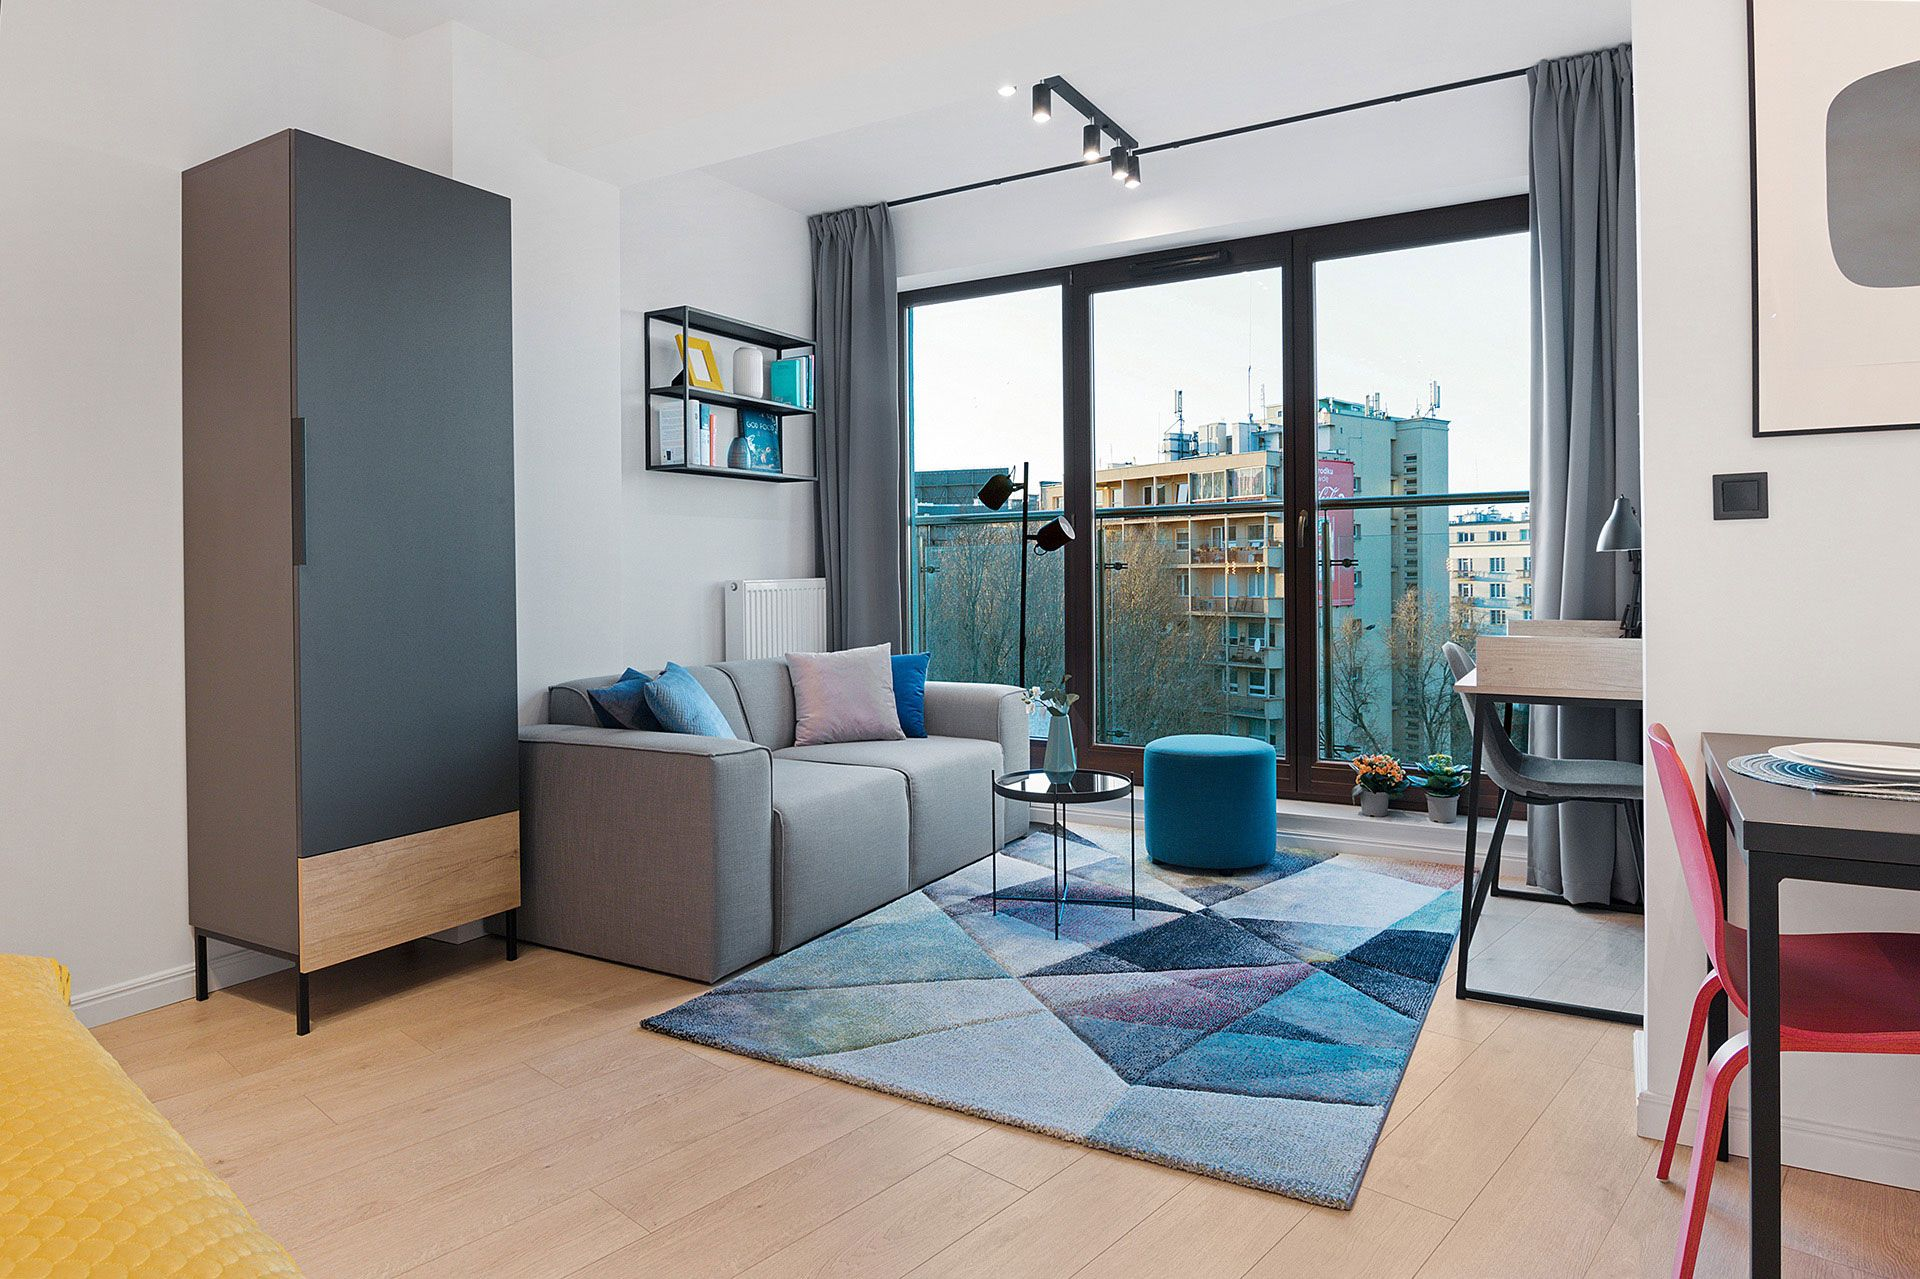 Studio - Medium apartment to rent in Warsaw UPR-A-087-1